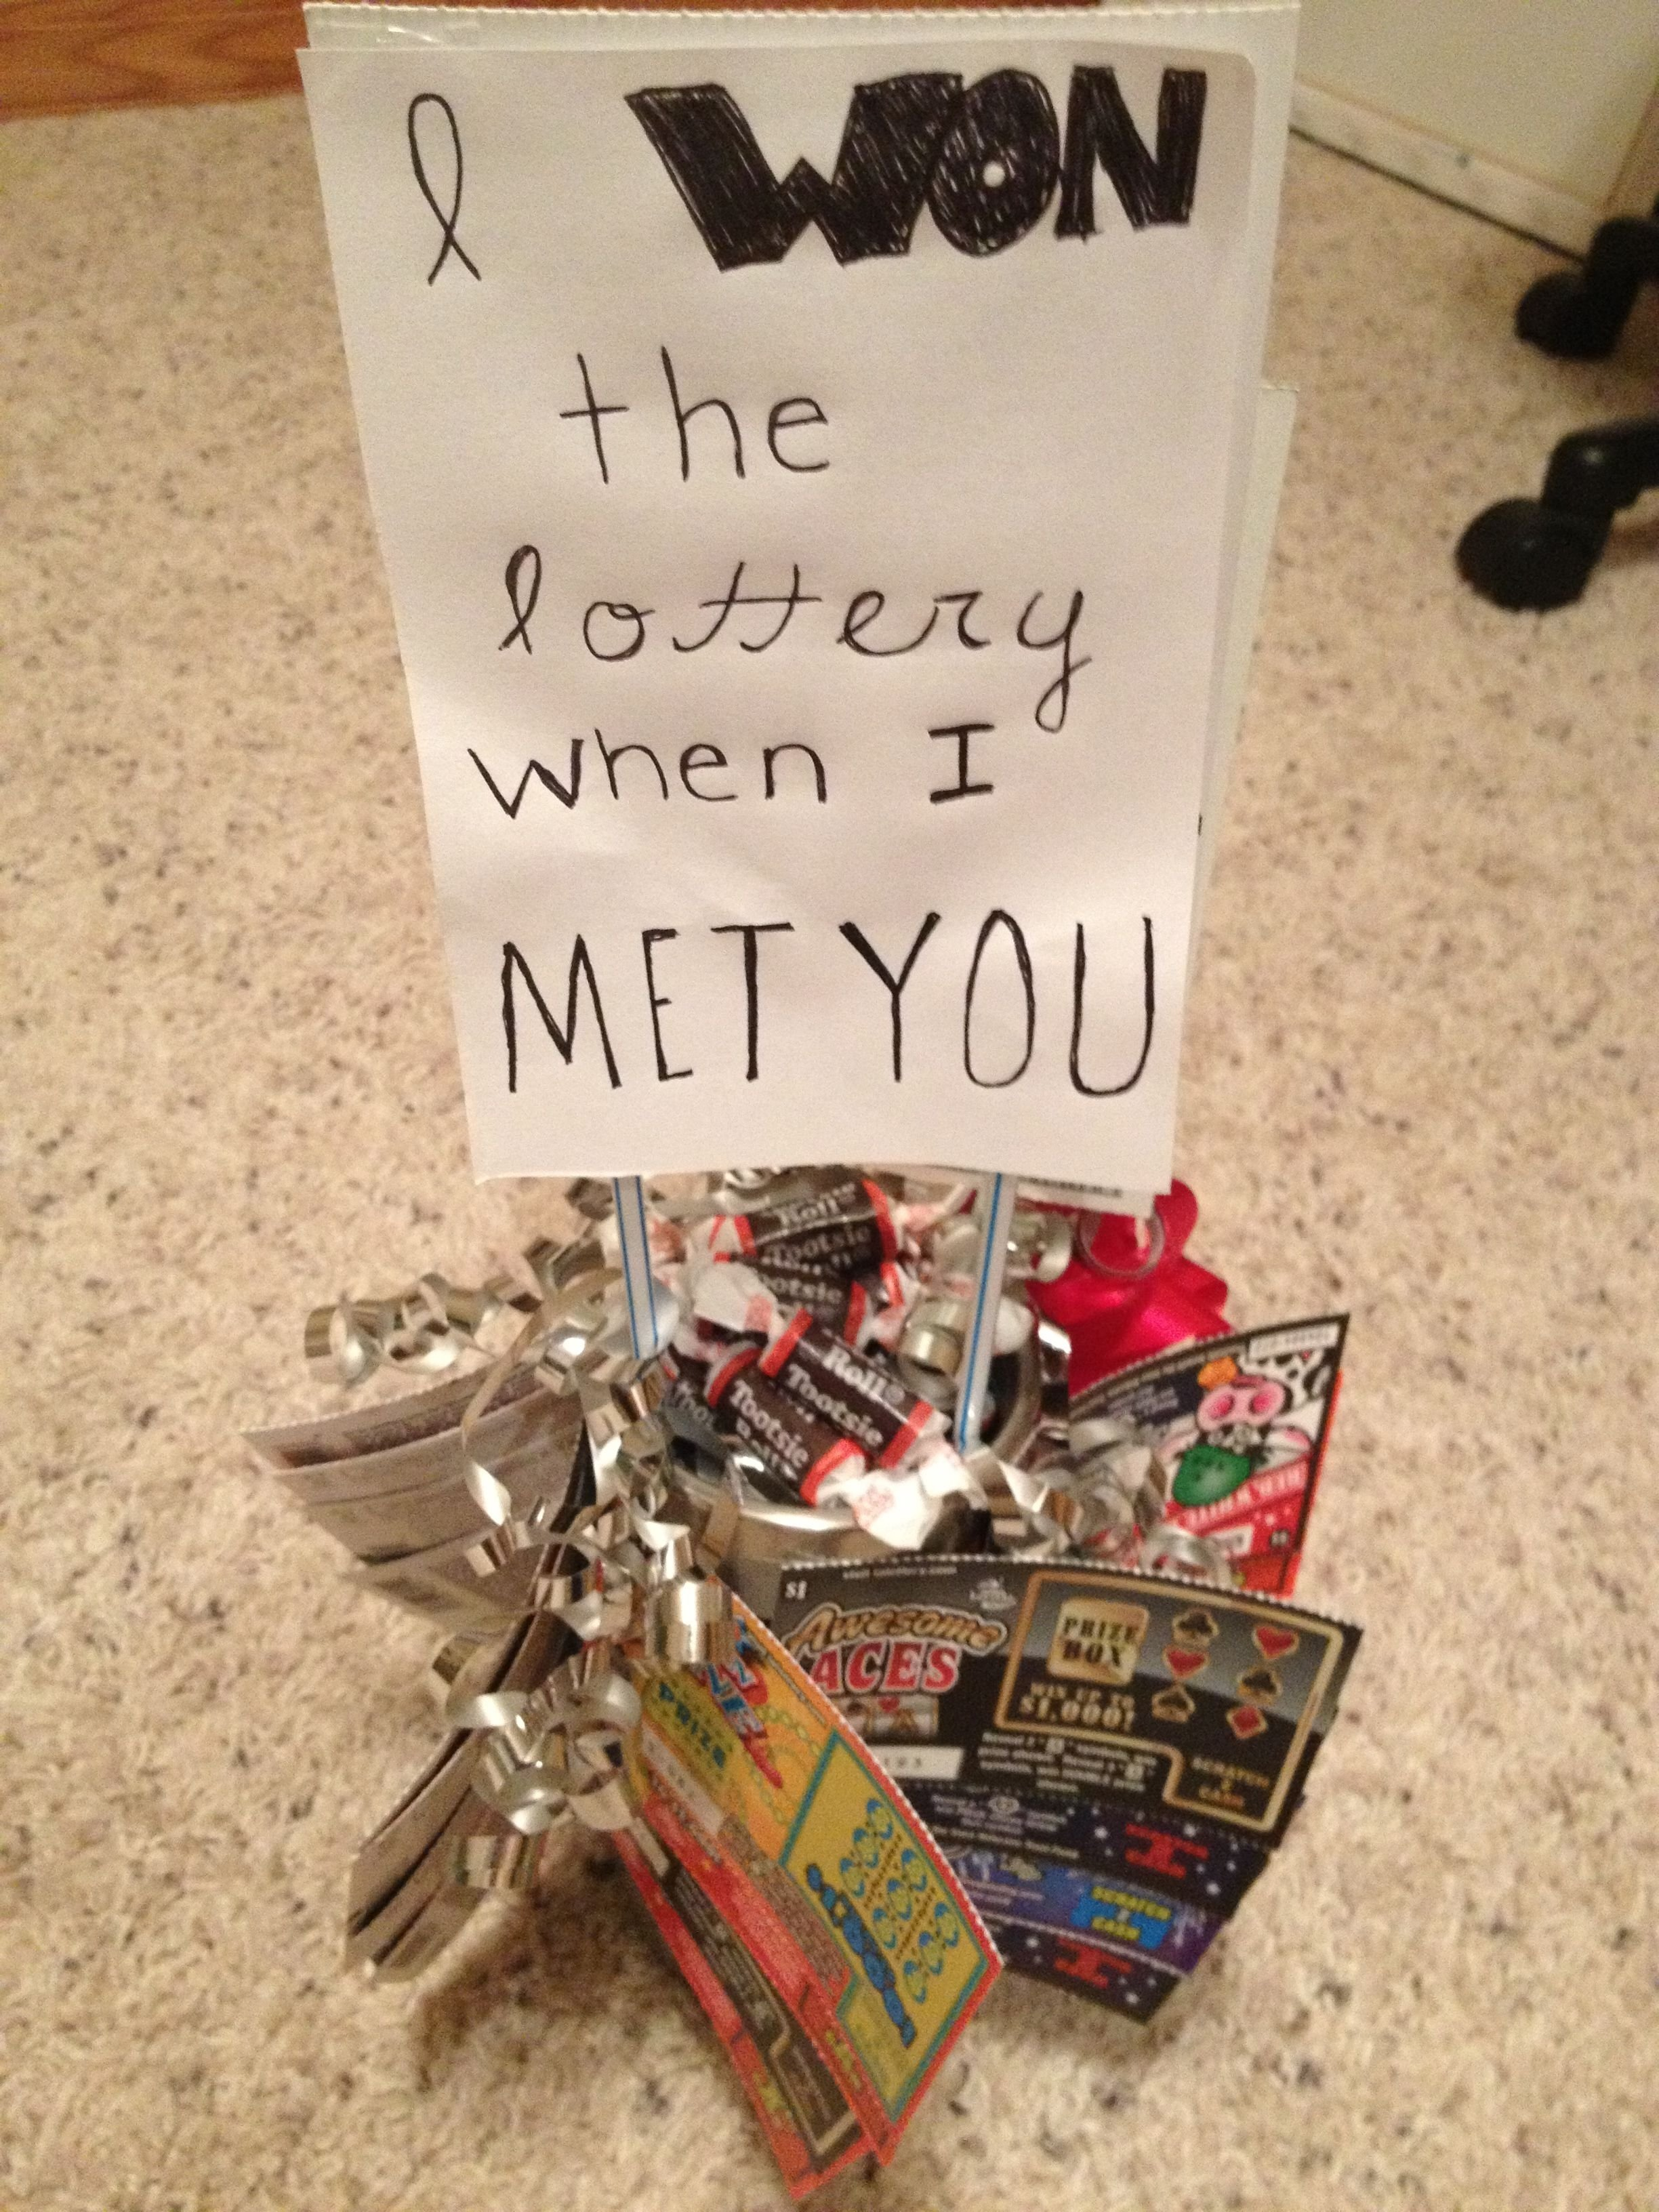 10 Stylish Homemade Birthday Ideas For Boyfriend homemade gift with candies and lottery tickets i won the lottery 2020